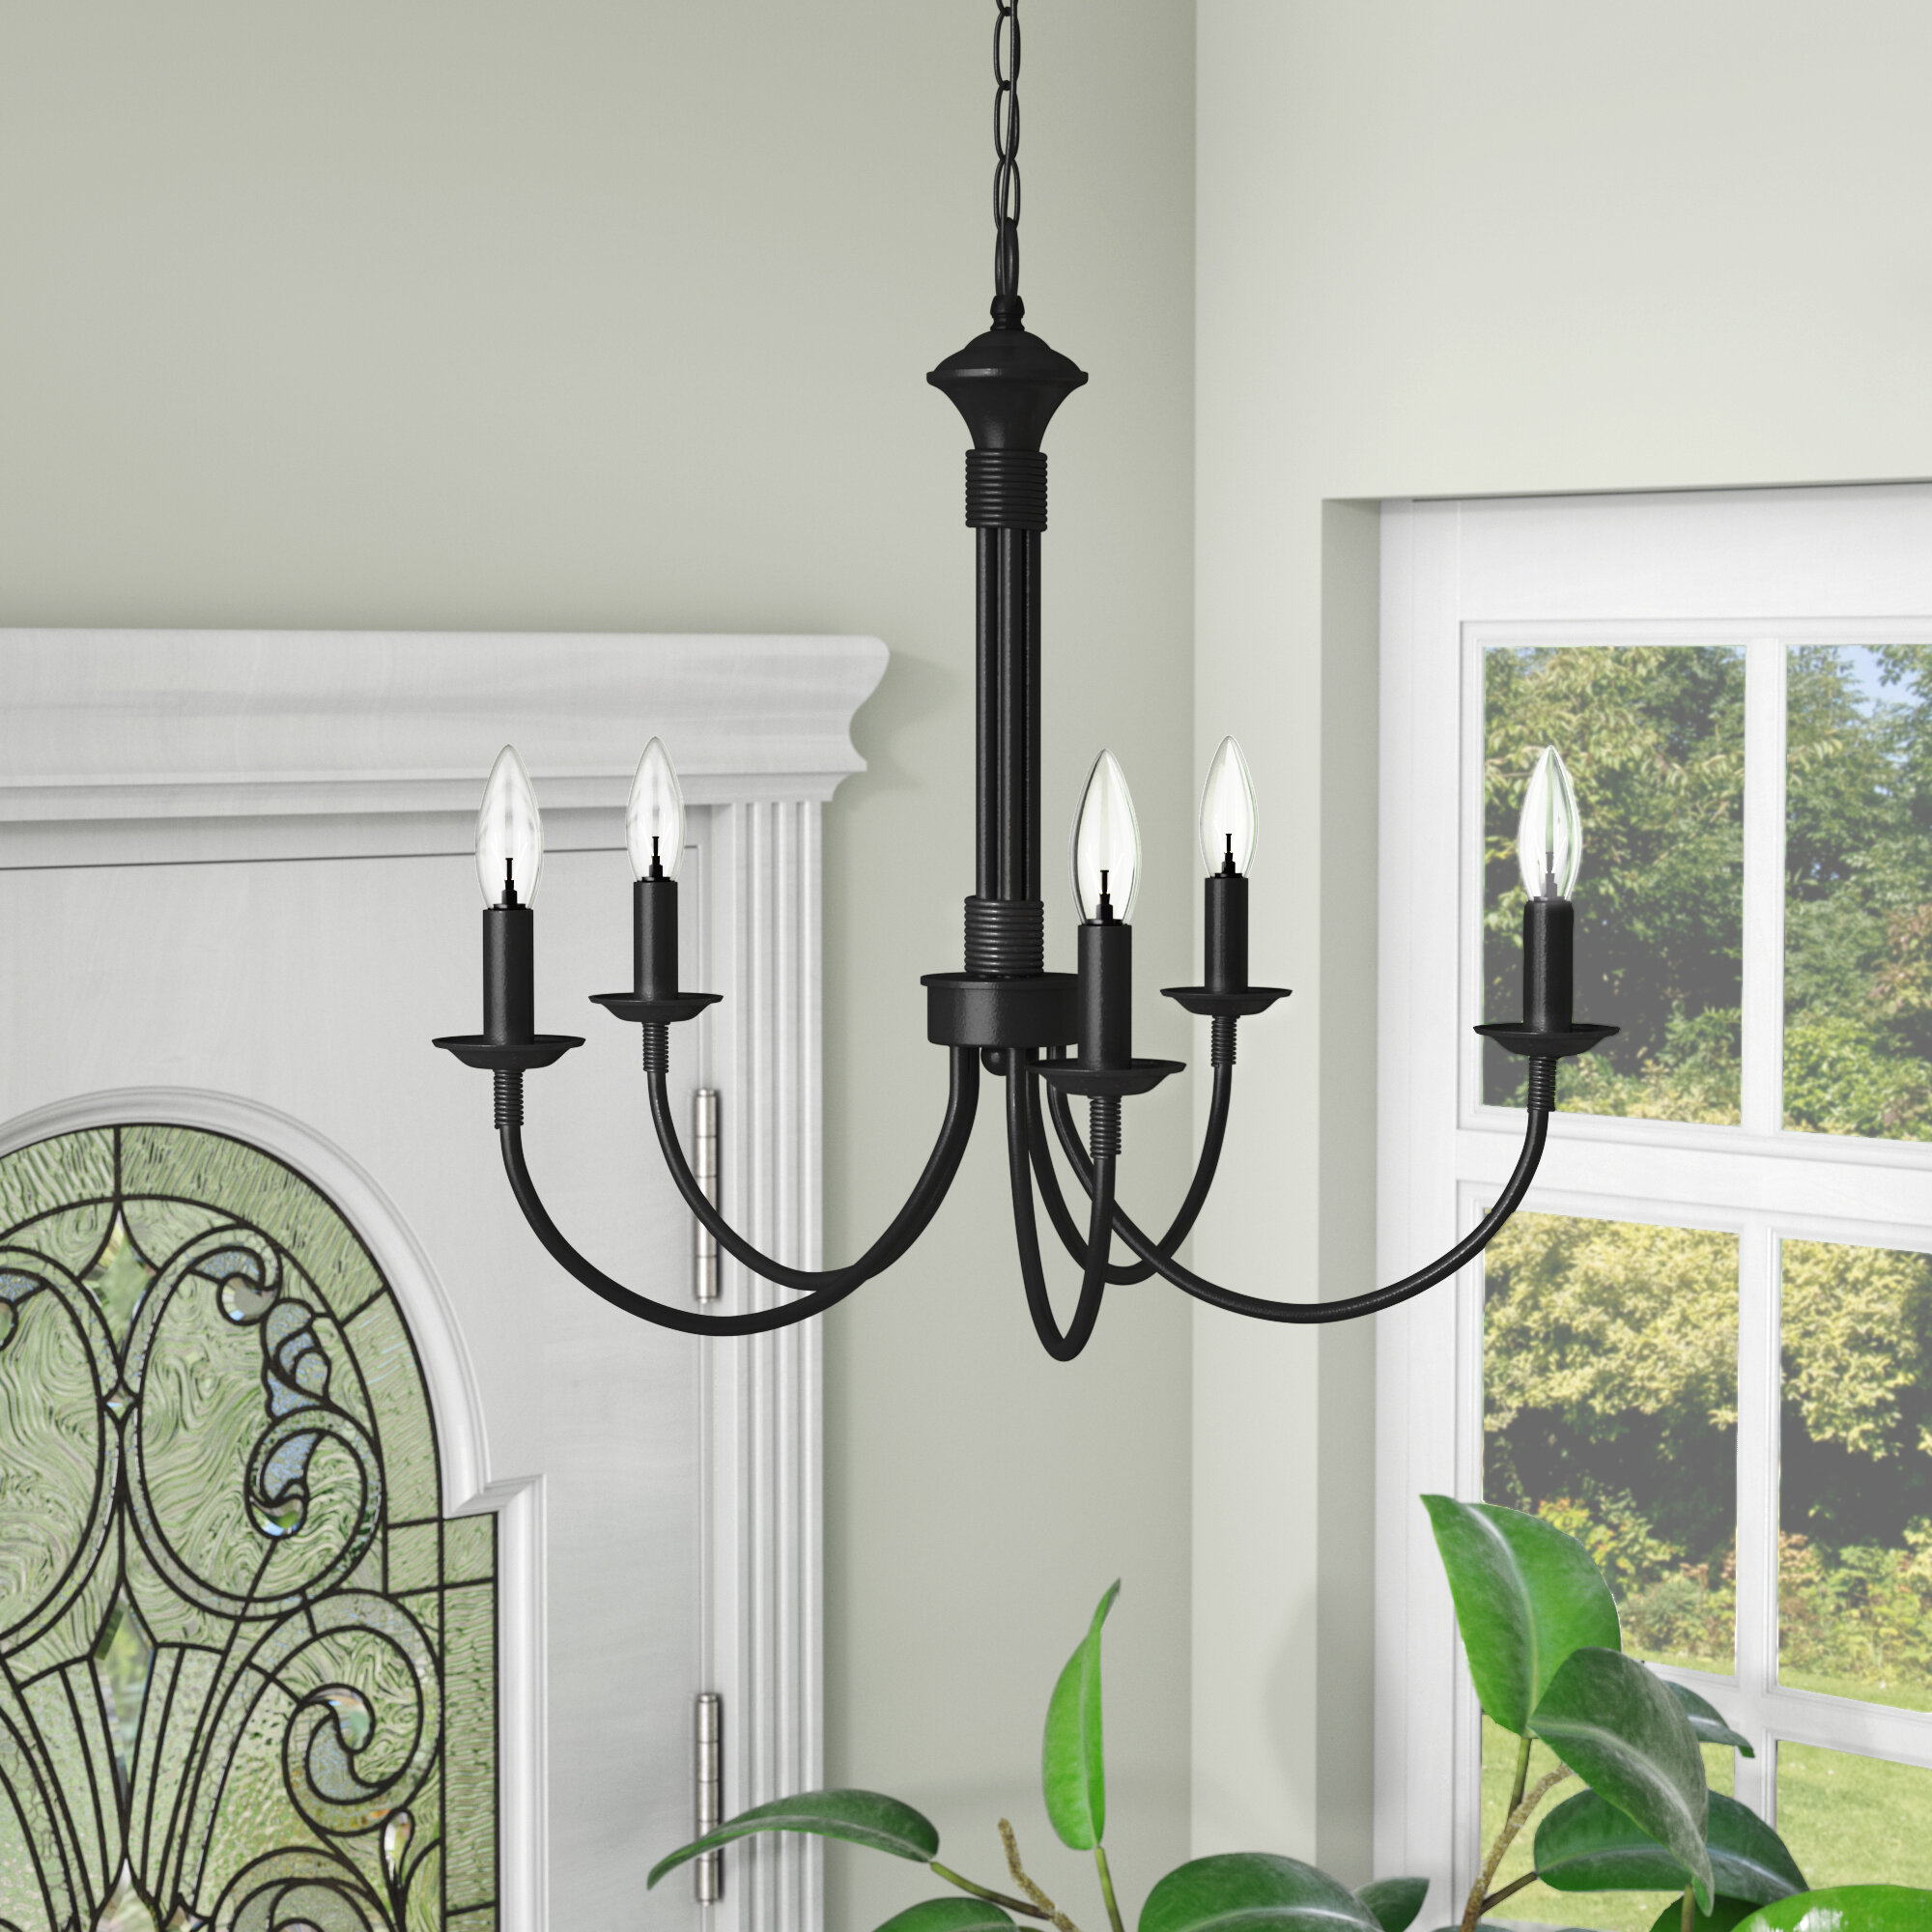 Laurel Foundry Modern Farmhouse Shaylee 5 Light Candle Style Empire Chandelier Reviews Wayfair